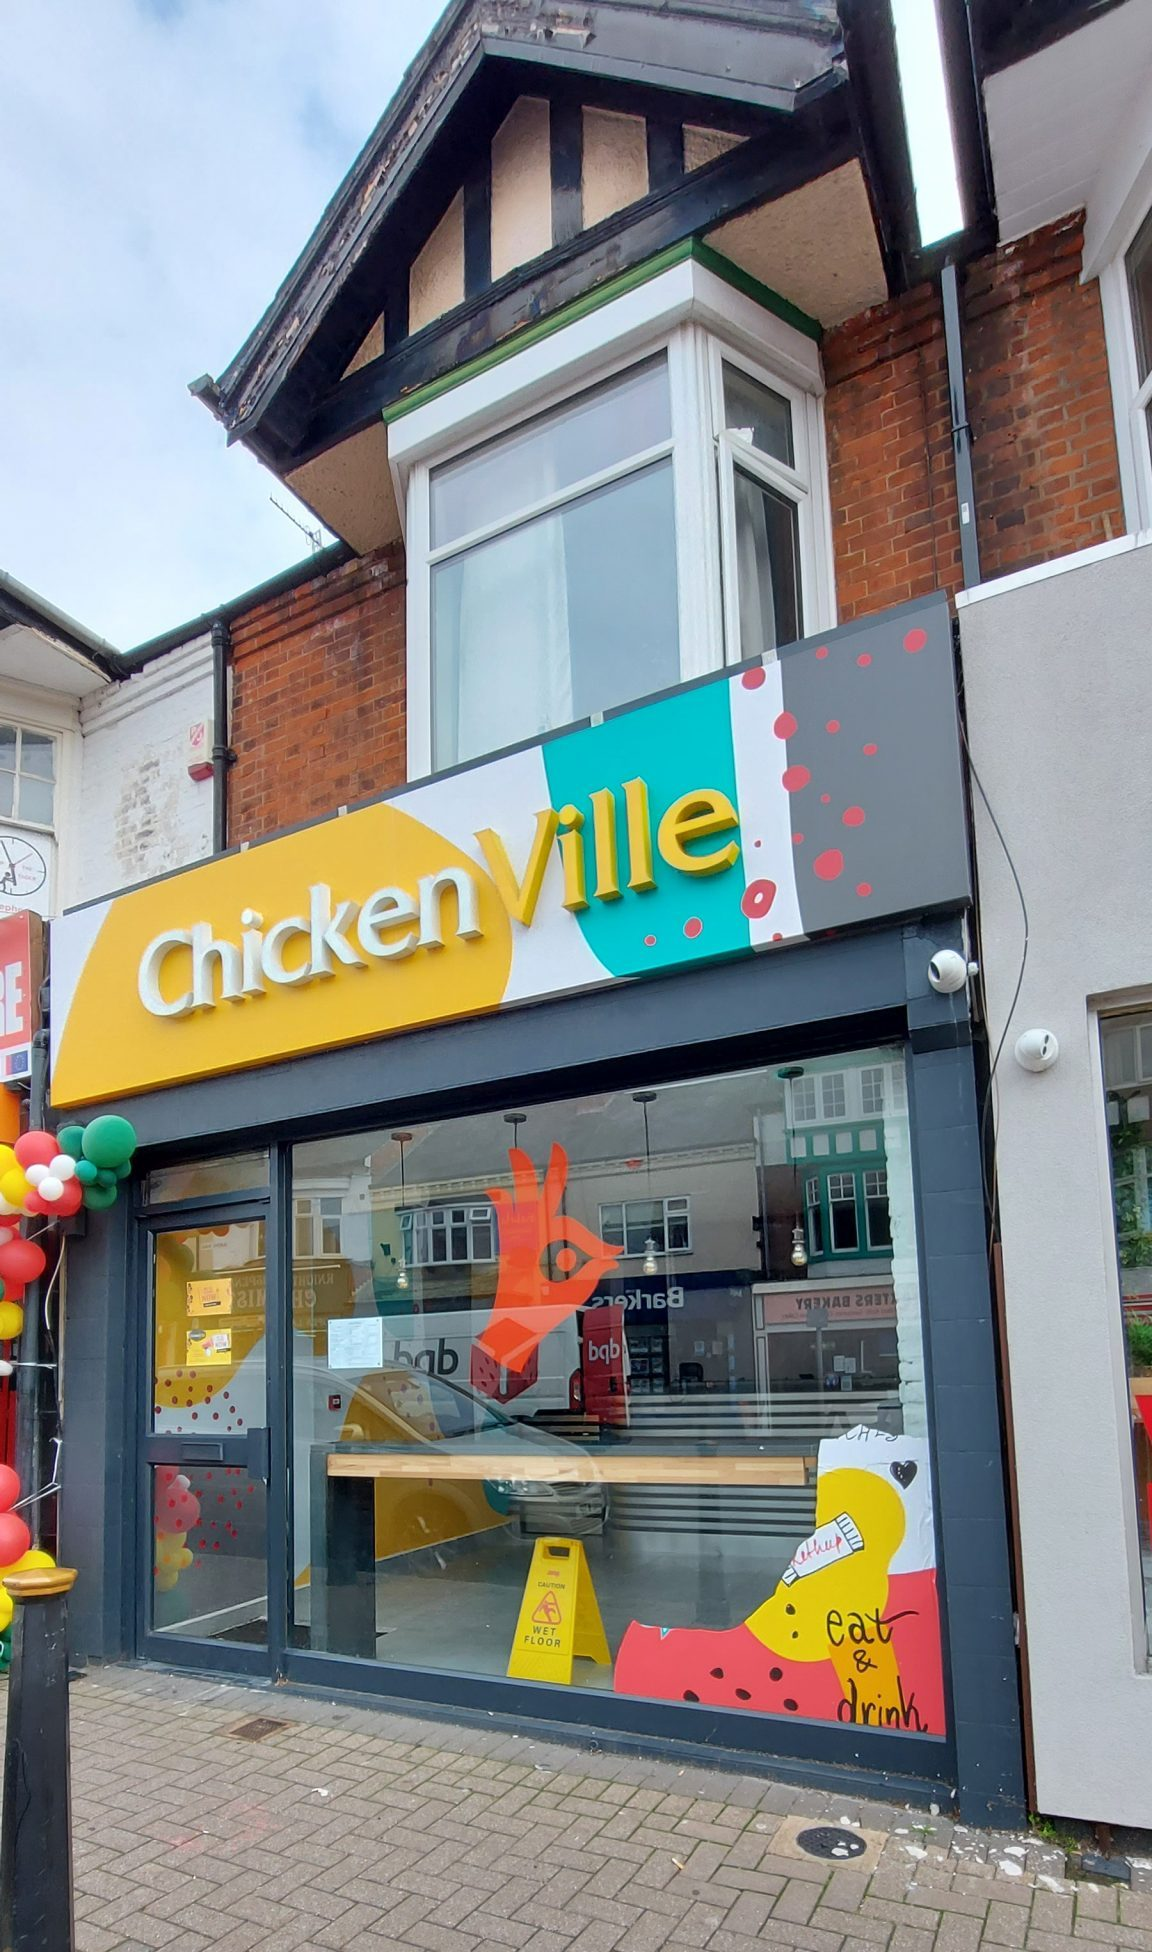 chickenville on 68, queens road leicester